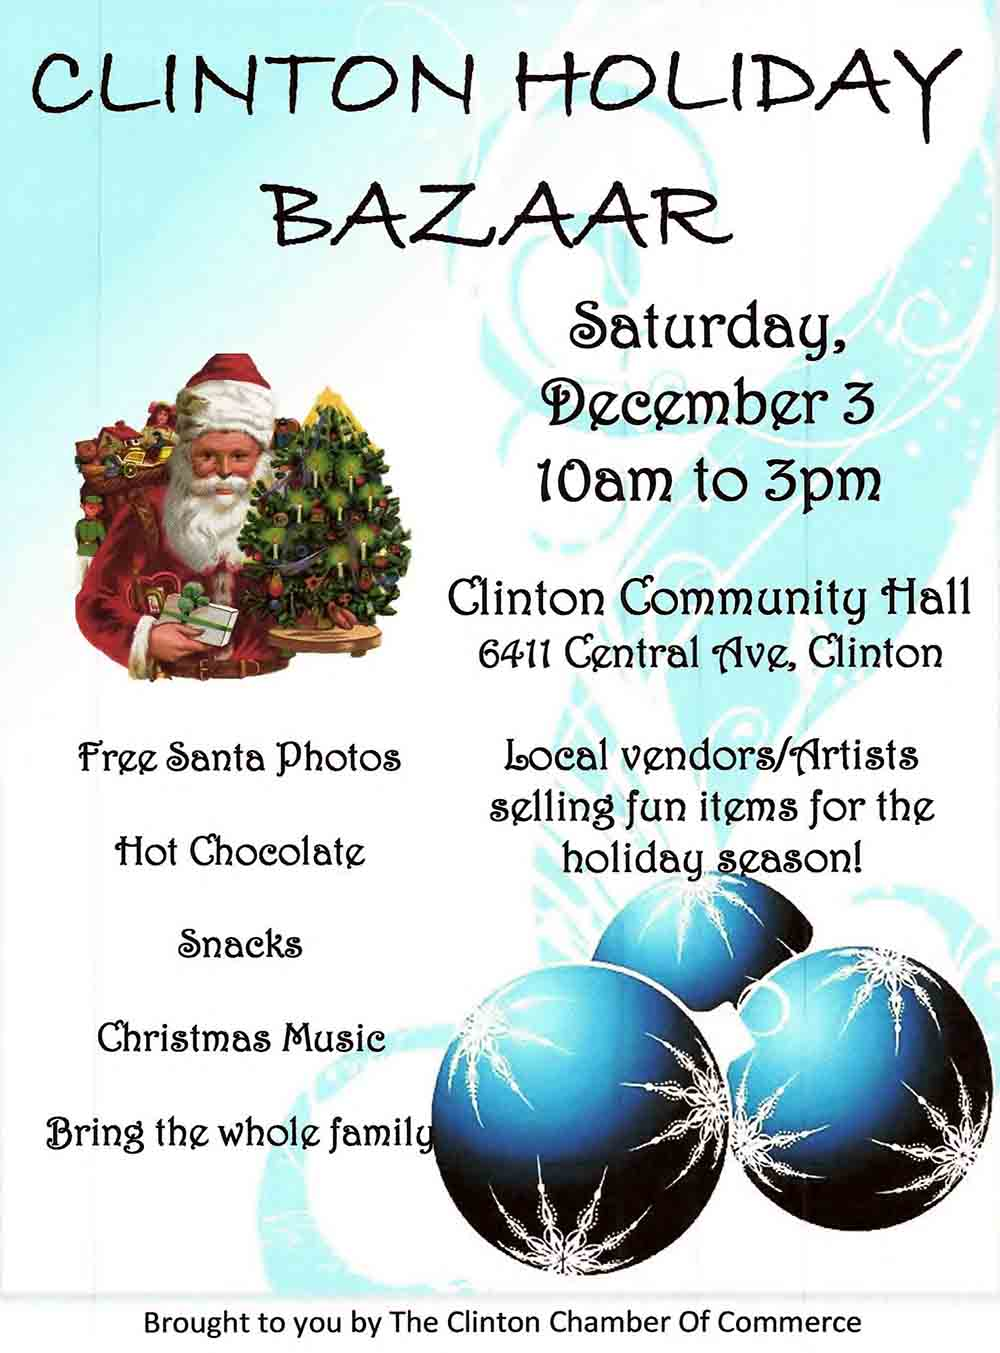 poster showing the clinton holiday bazaar location of clinton community hall on december 3 from